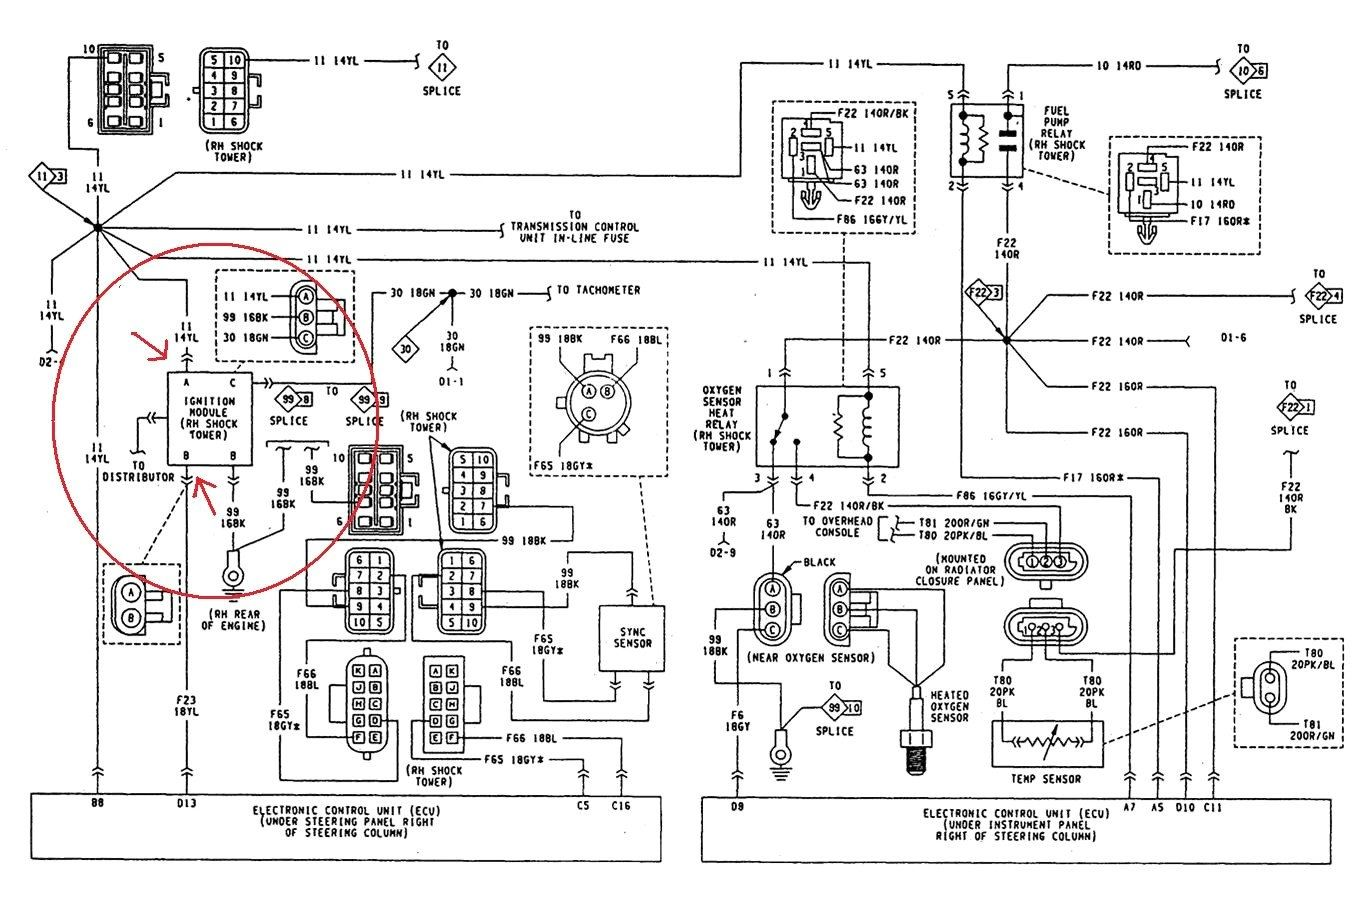 medium resolution of 1990 jeep wiring diagram wiring diagram 1990 jeep yj vacuum diagram 1990 jeep wrangler 4 2